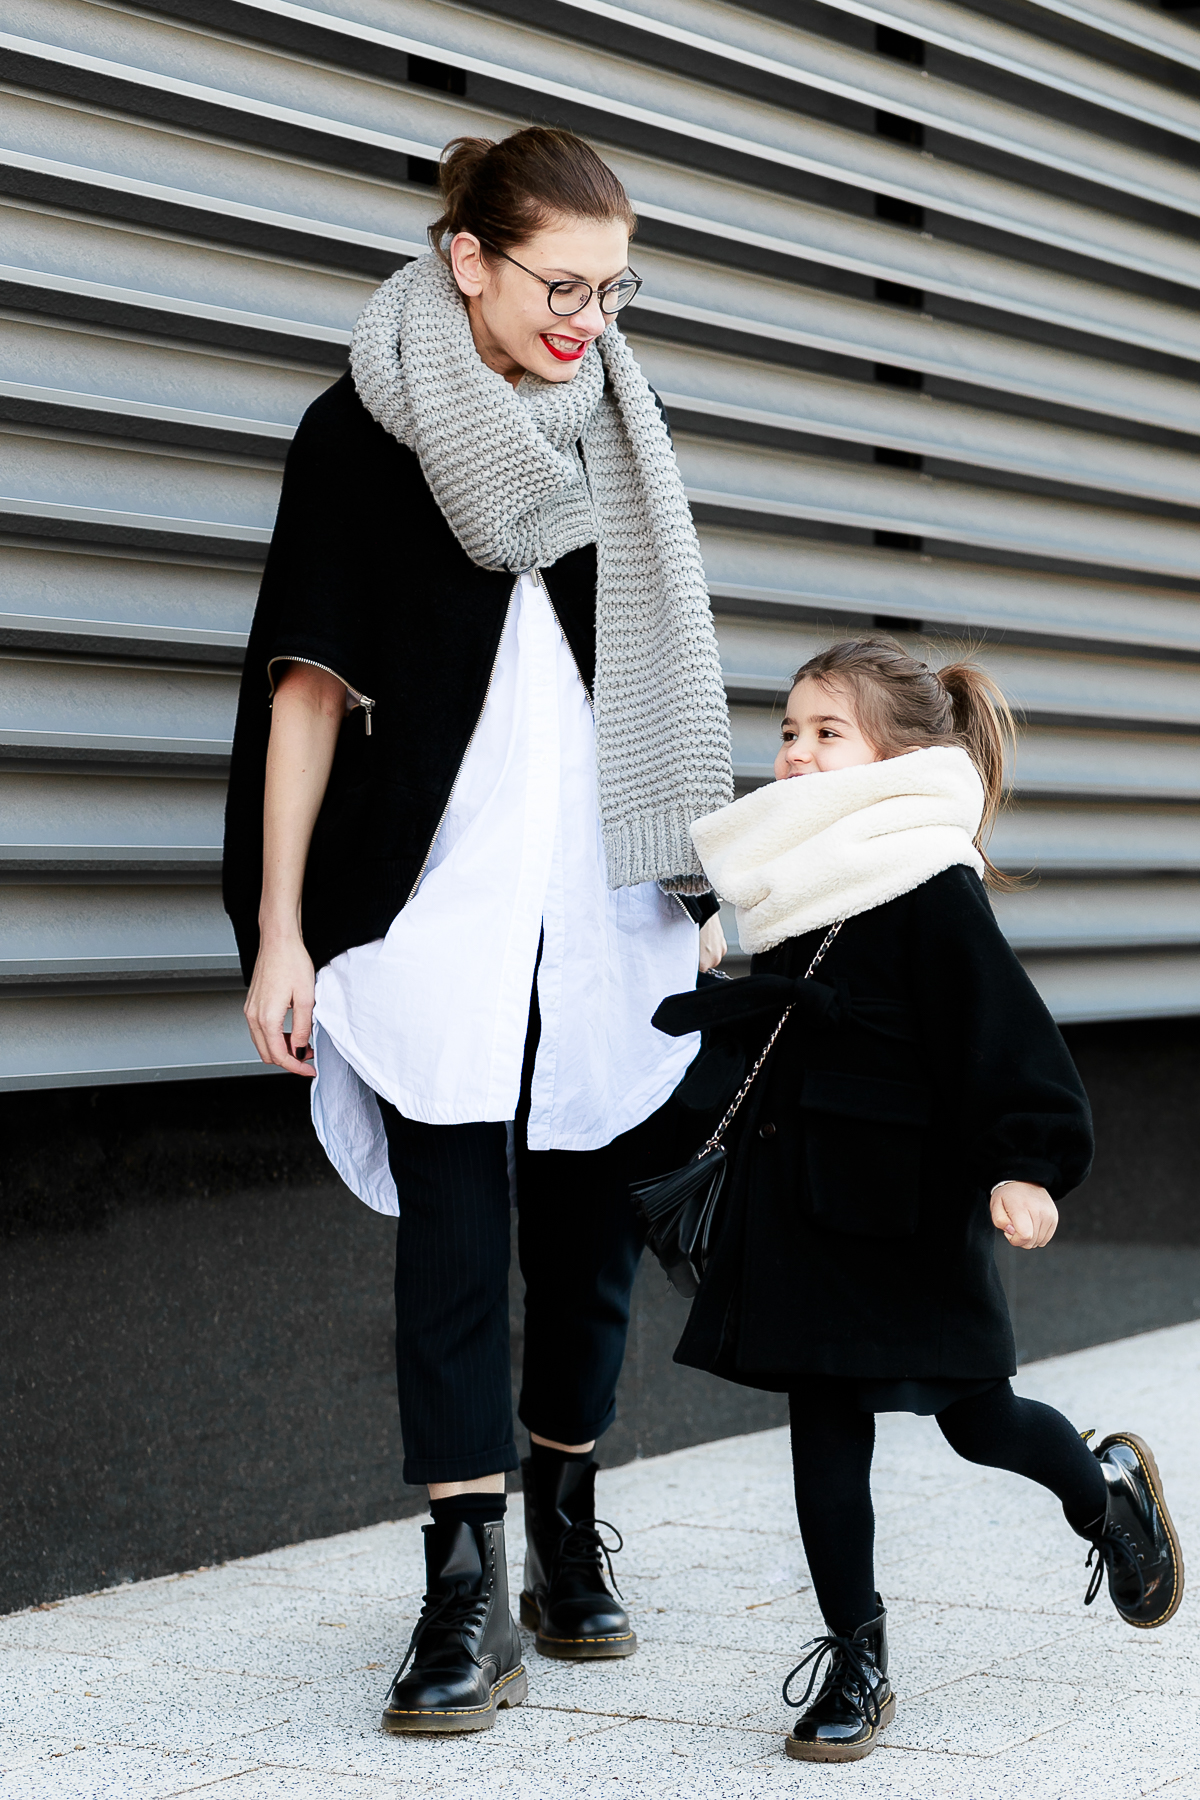 How To Wear Combat Boots | Mother - Daughter Mommy and Me Outfit Mini Me Street Style feat. Dr. Martens boots | EdgyCuts